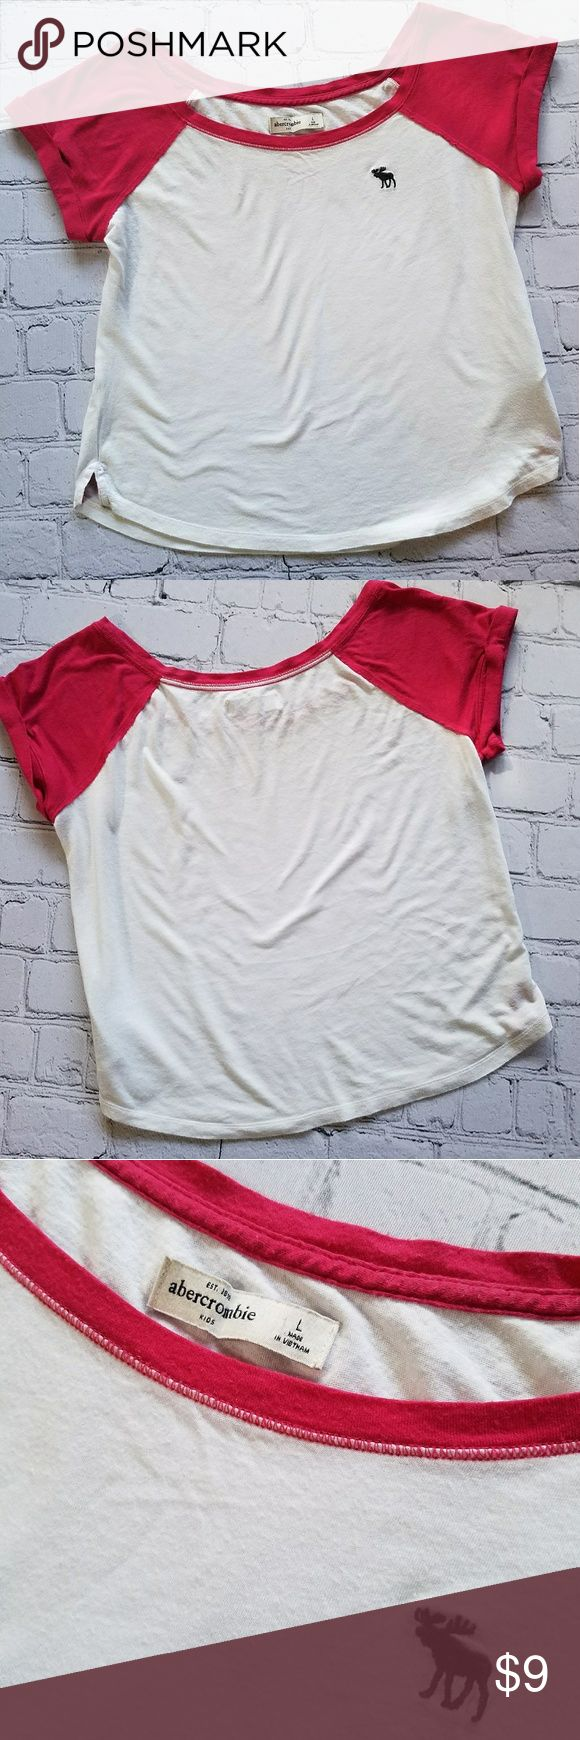 Abercrombie Girls Light T-shirt Sz Large Cute, light-weight basic, & casual. Good condition!  Rolled sleeves Wide & loose Abercrombie Kids Size Large Hot pink sleeves, neckline and bottom hem insides. Curved bottom hem Abercombie Kids Shirts & Tops Tees - Short Sleeve